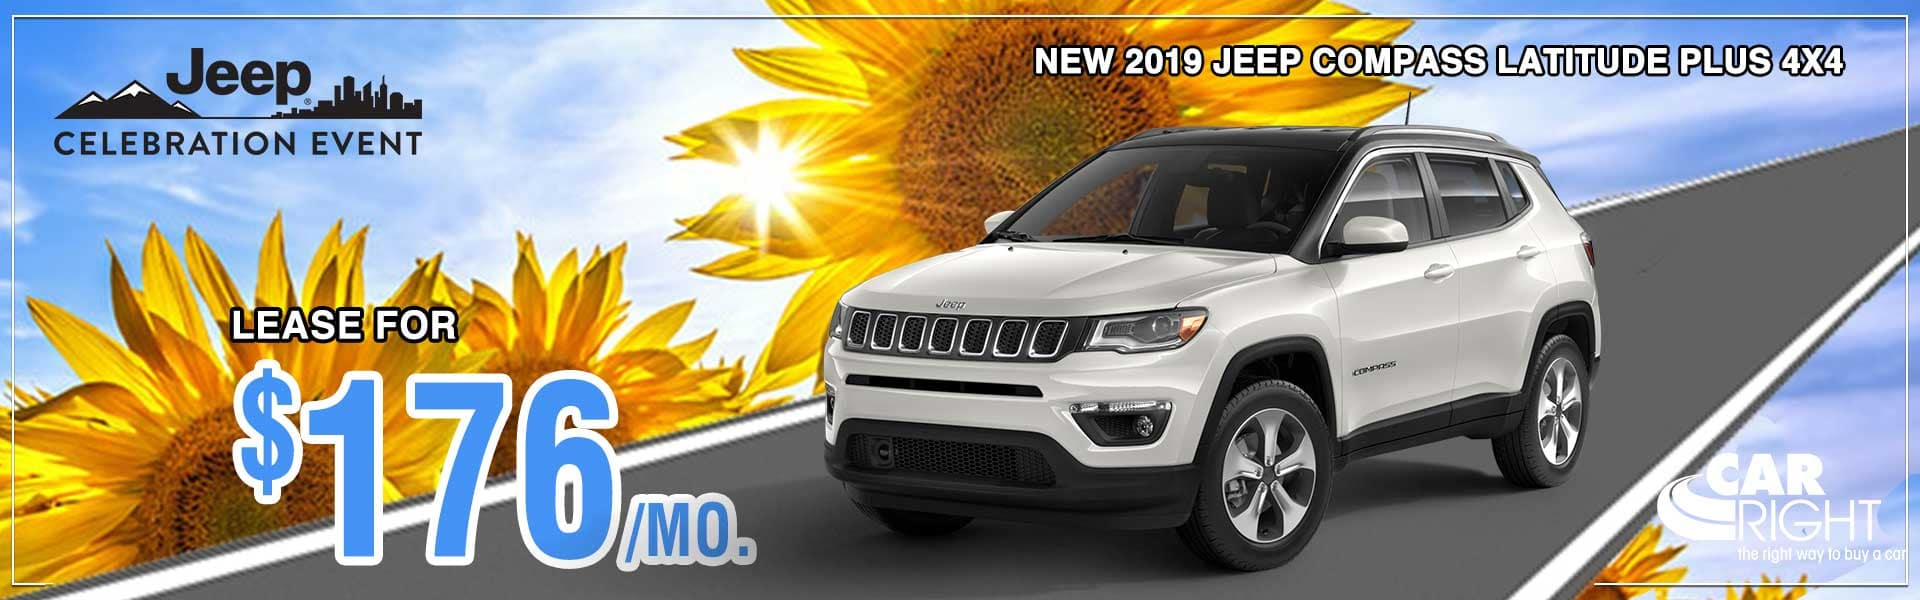 CarRight Chrysler Jeep Dodge Ram Fuso. Moon Township, PA. New, Used, parts, accessories, service. The right way to buy a car.. 2019 Jeep Compass Latitude 4x4